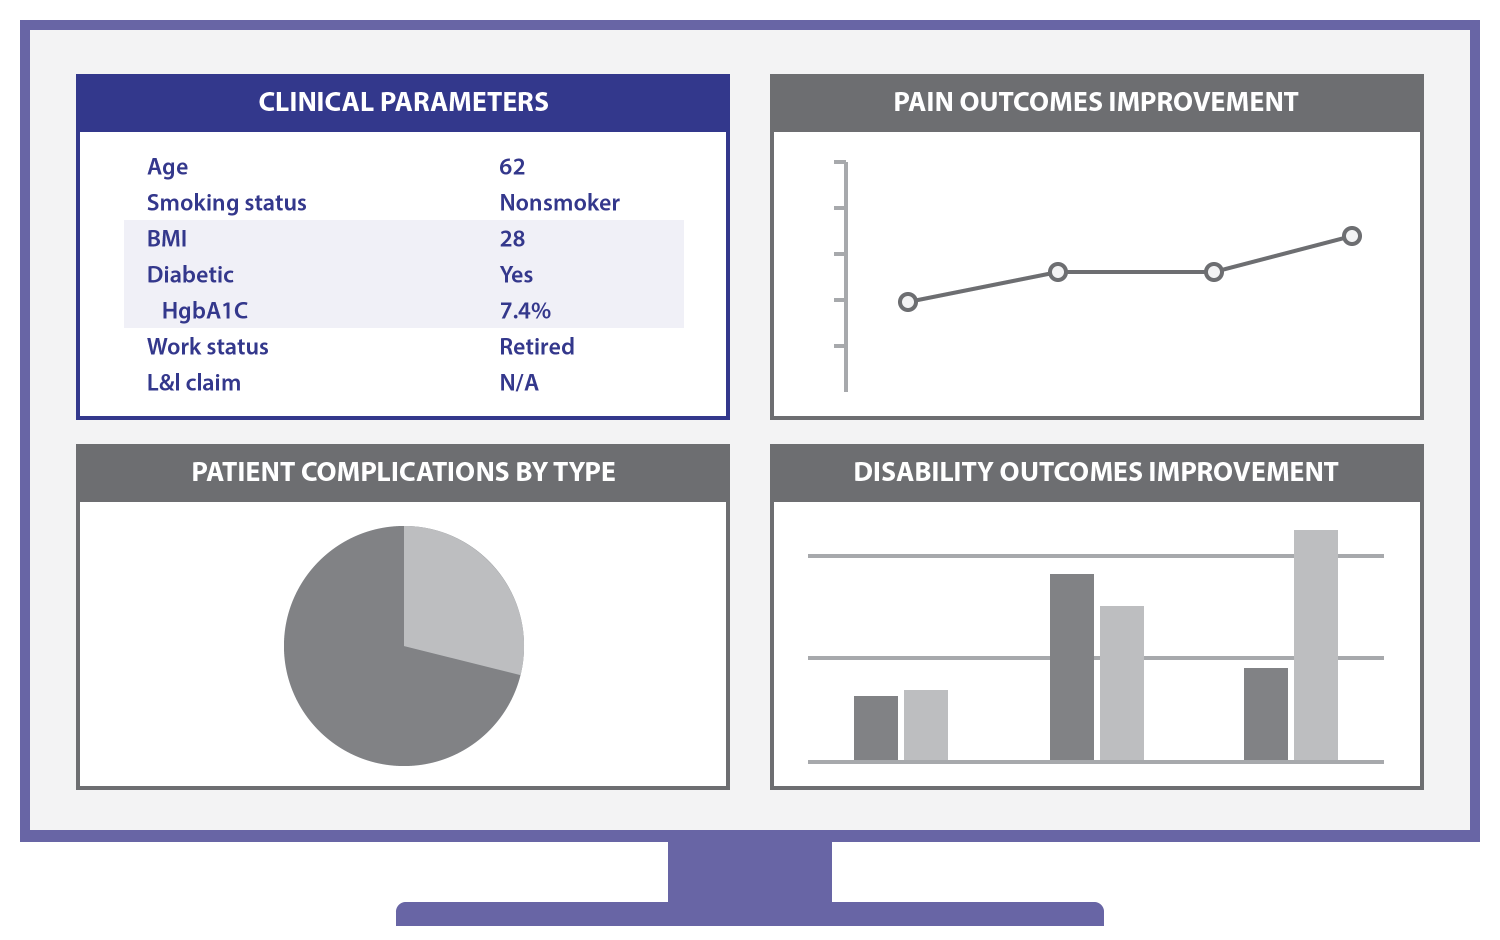 Graphic showing a dashboard with four panels, Clinical Parameters, Pain Outcomes Improvement, Mean Monthly Pain Days, and Disability Outcomes Improvement